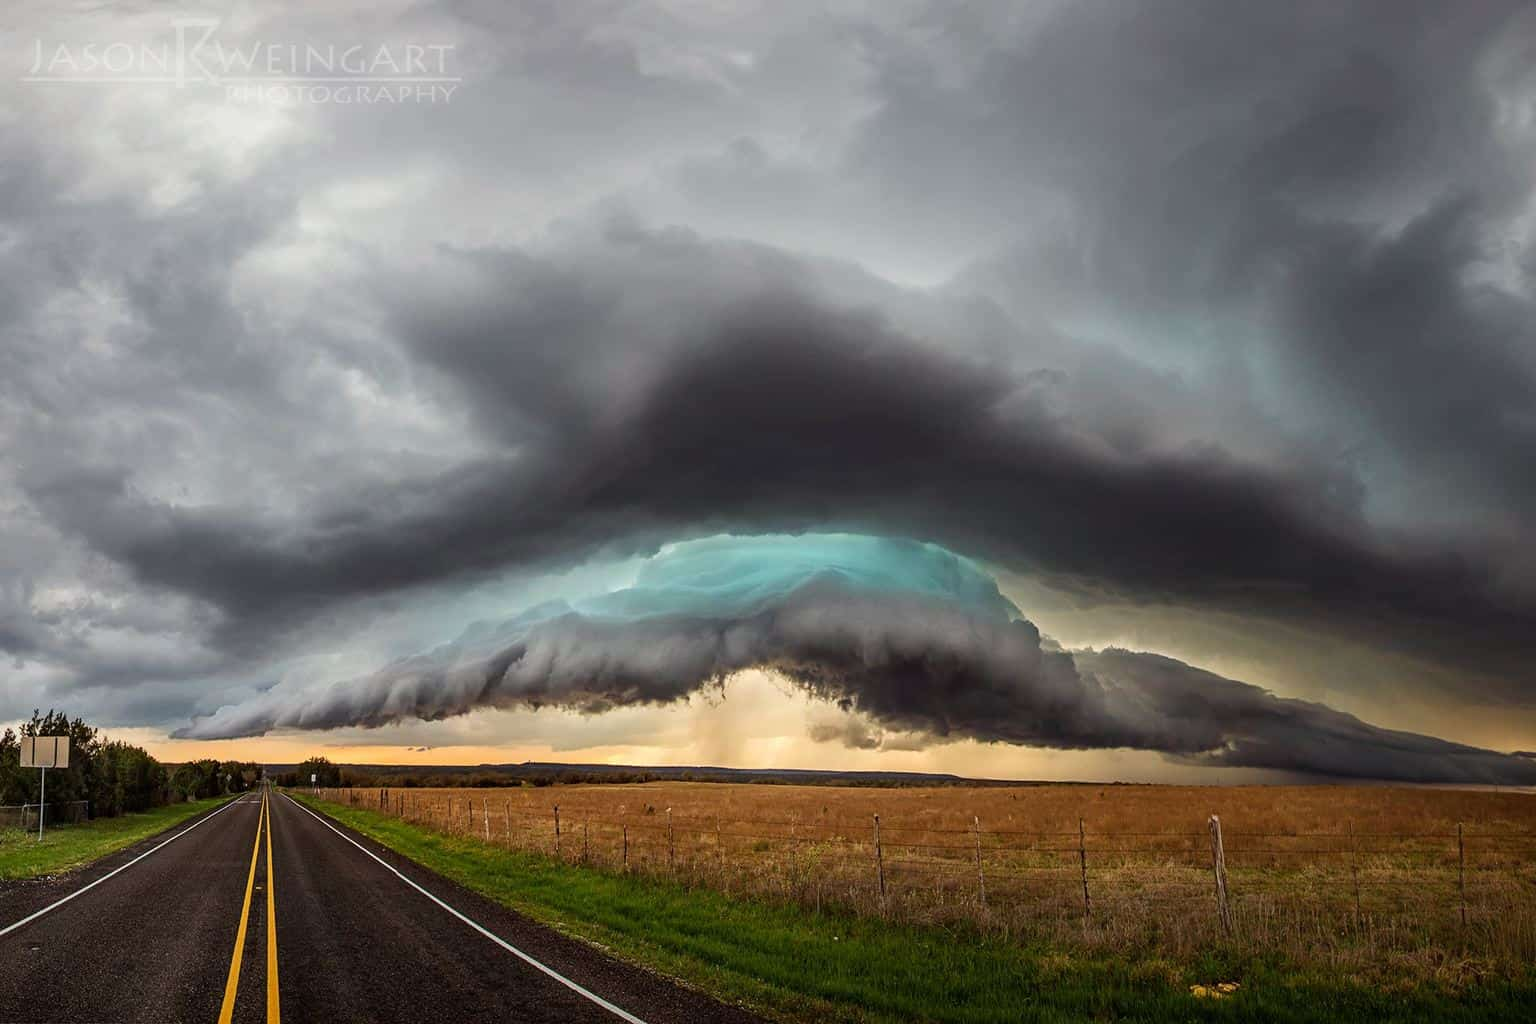 Shelf cloud on a severe warned supercell near Evant, Texas this afternoon. 16 image panorama f/5.6 1/200th second ISO 800